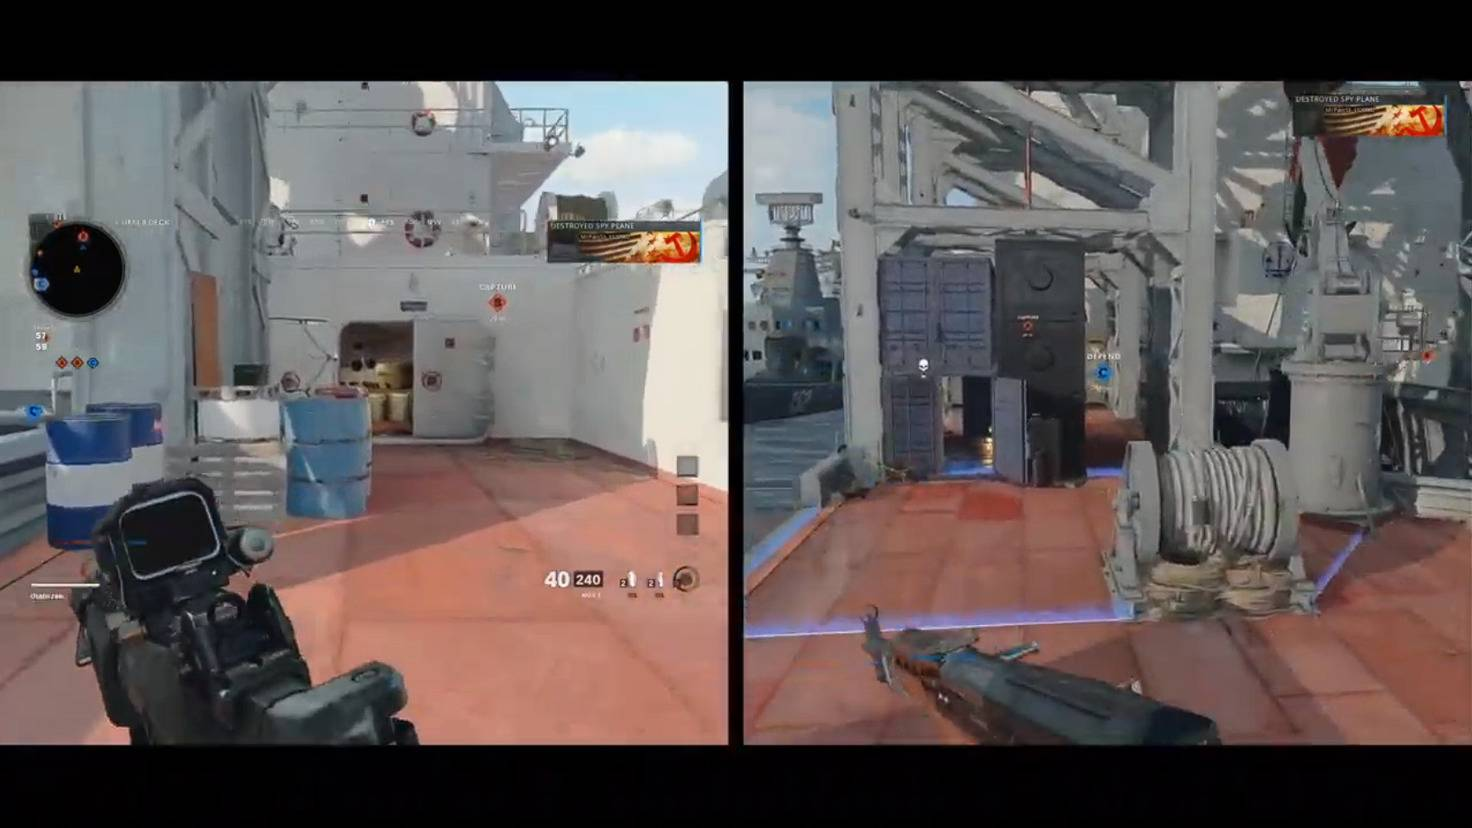 Call-of-duty-black-ops-cold-war-spltscreen-kein-hud